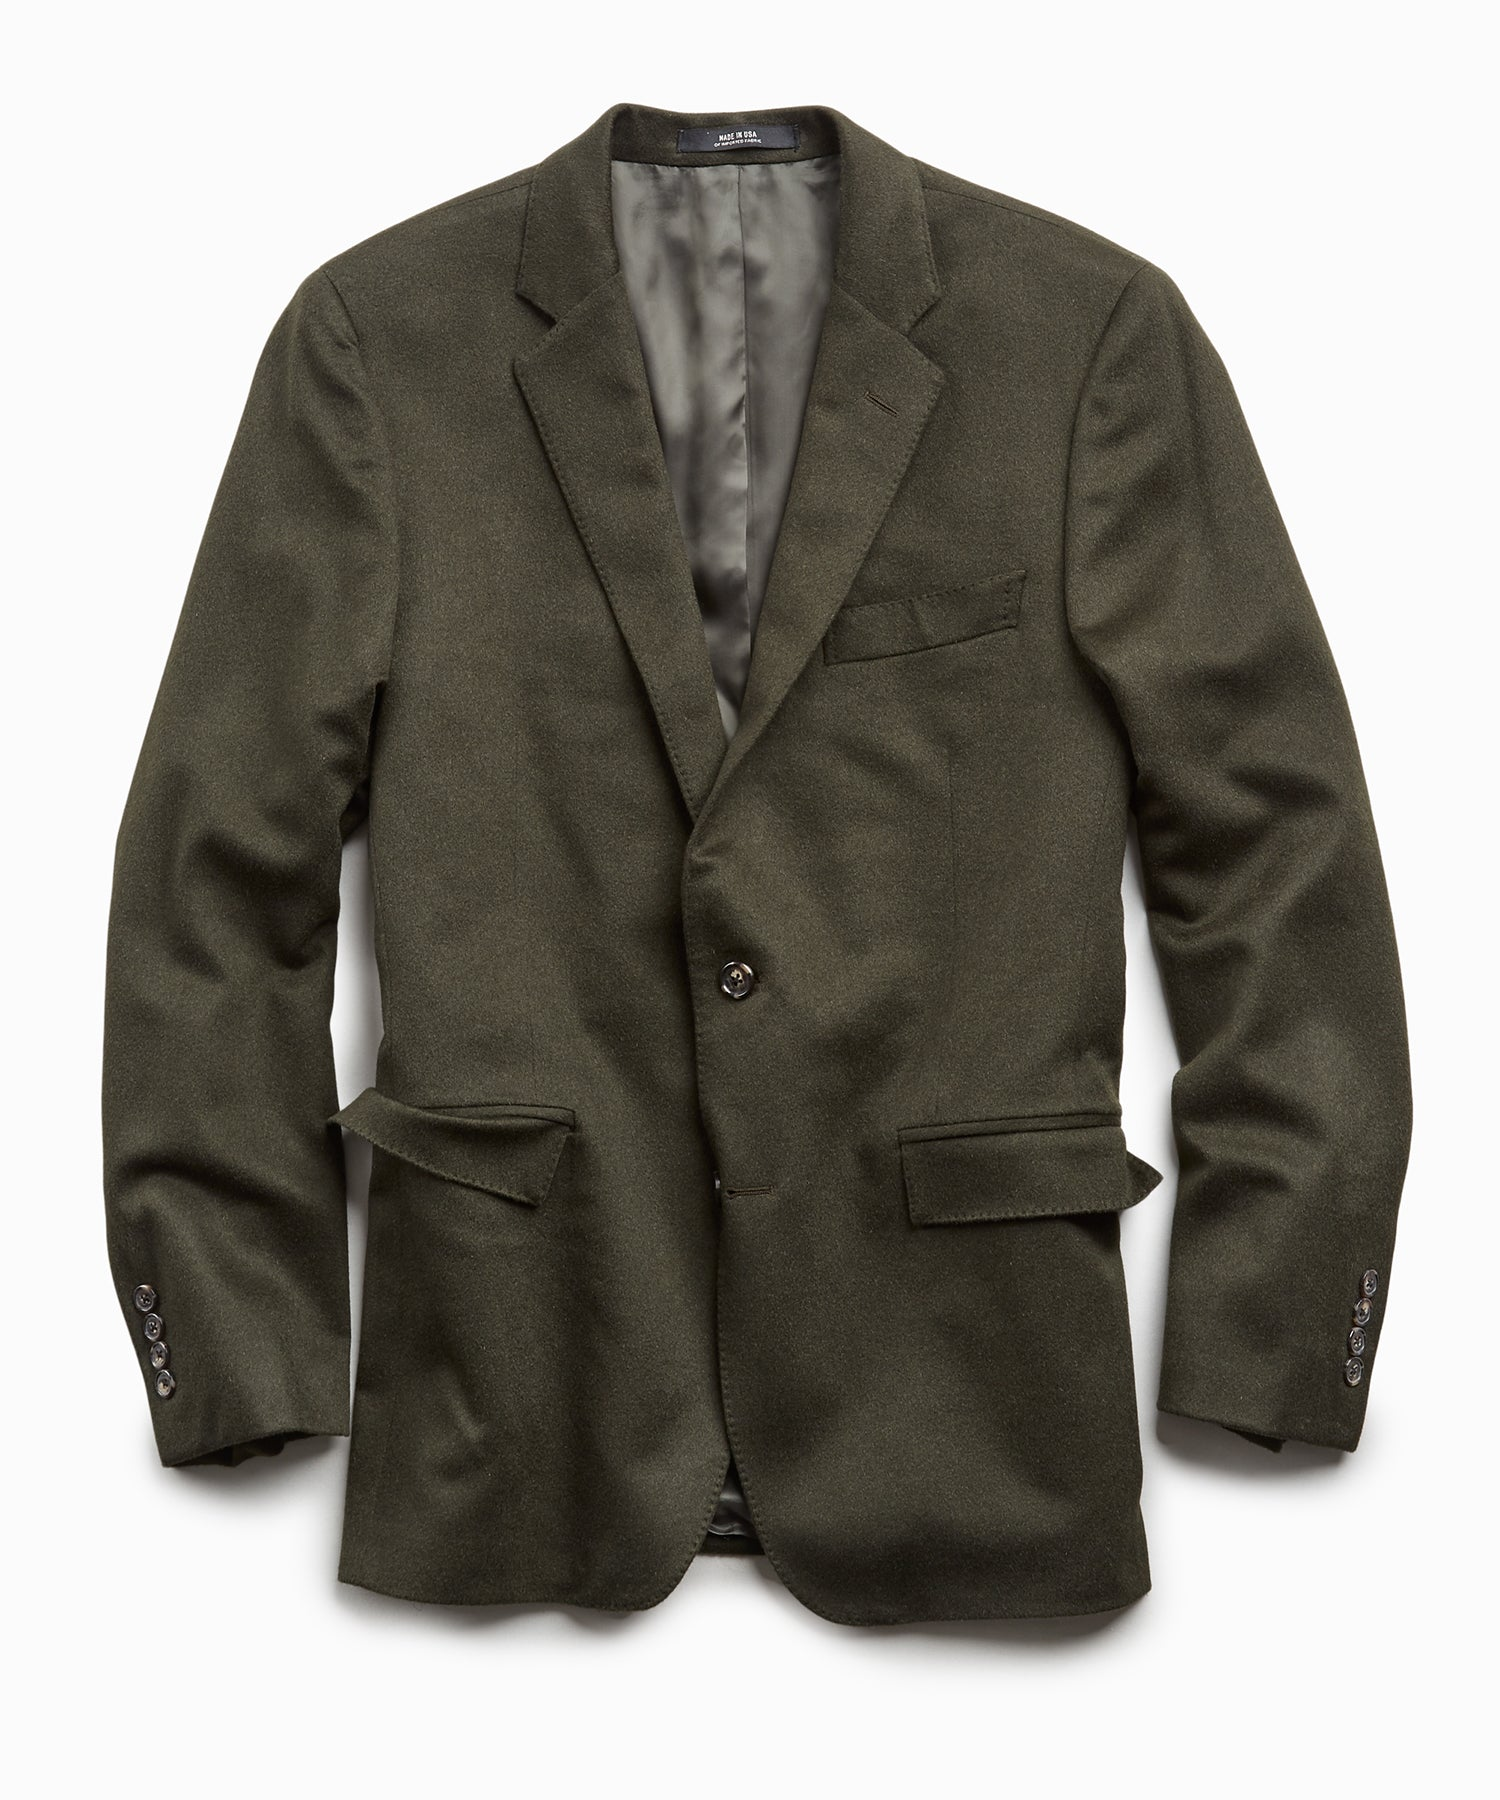 Italian Cashmere Sutton Suit Jacket in Olive